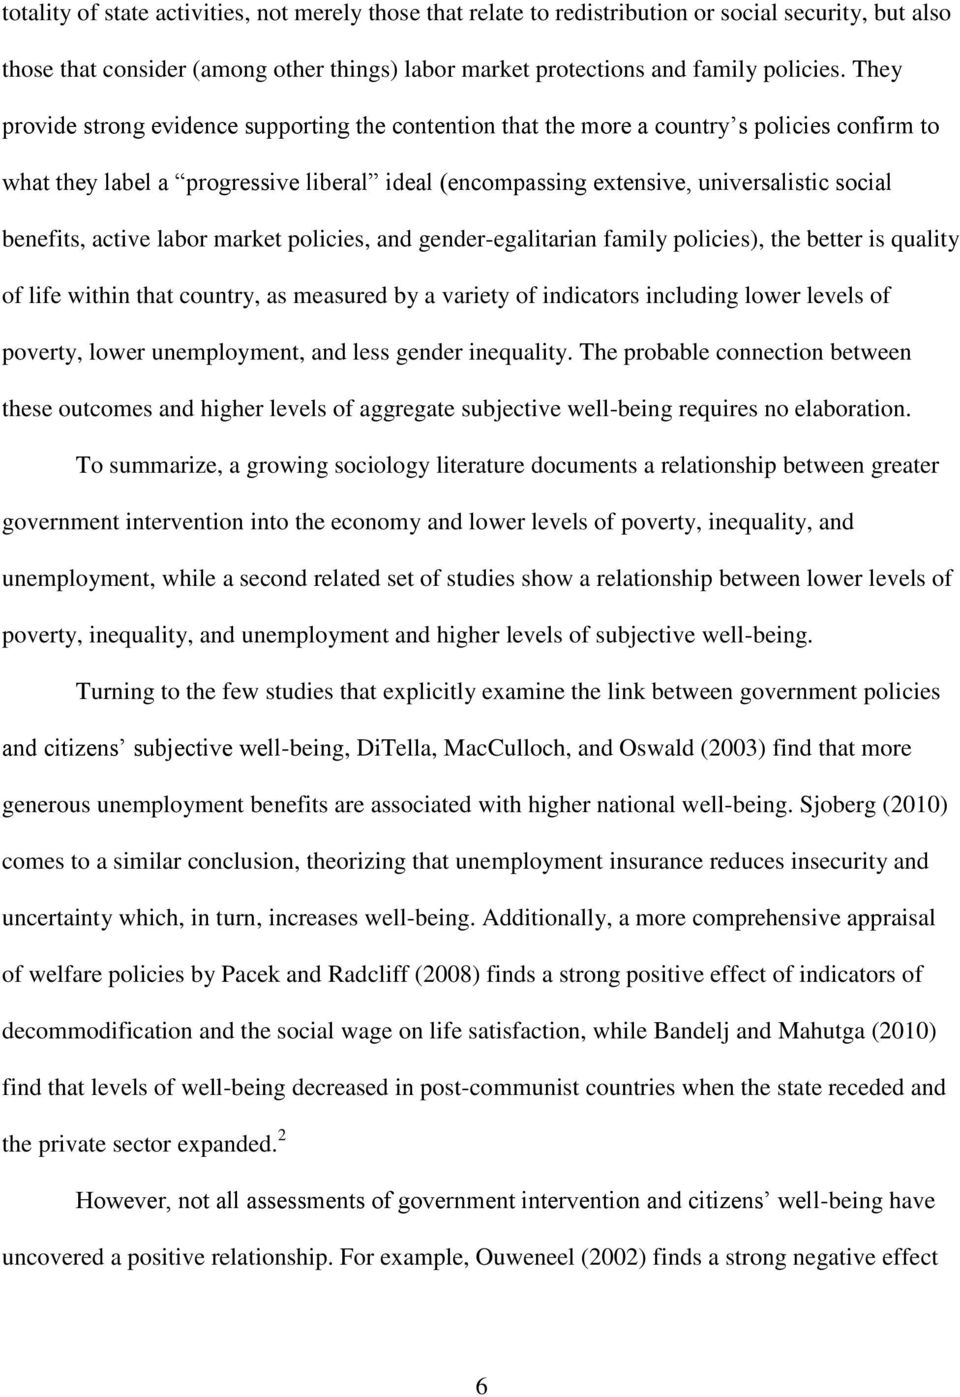 benefits, active labor market policies, and gender-egalitarian family policies), the better is quality of life within that country, as measured by a variety of indicators including lower levels of